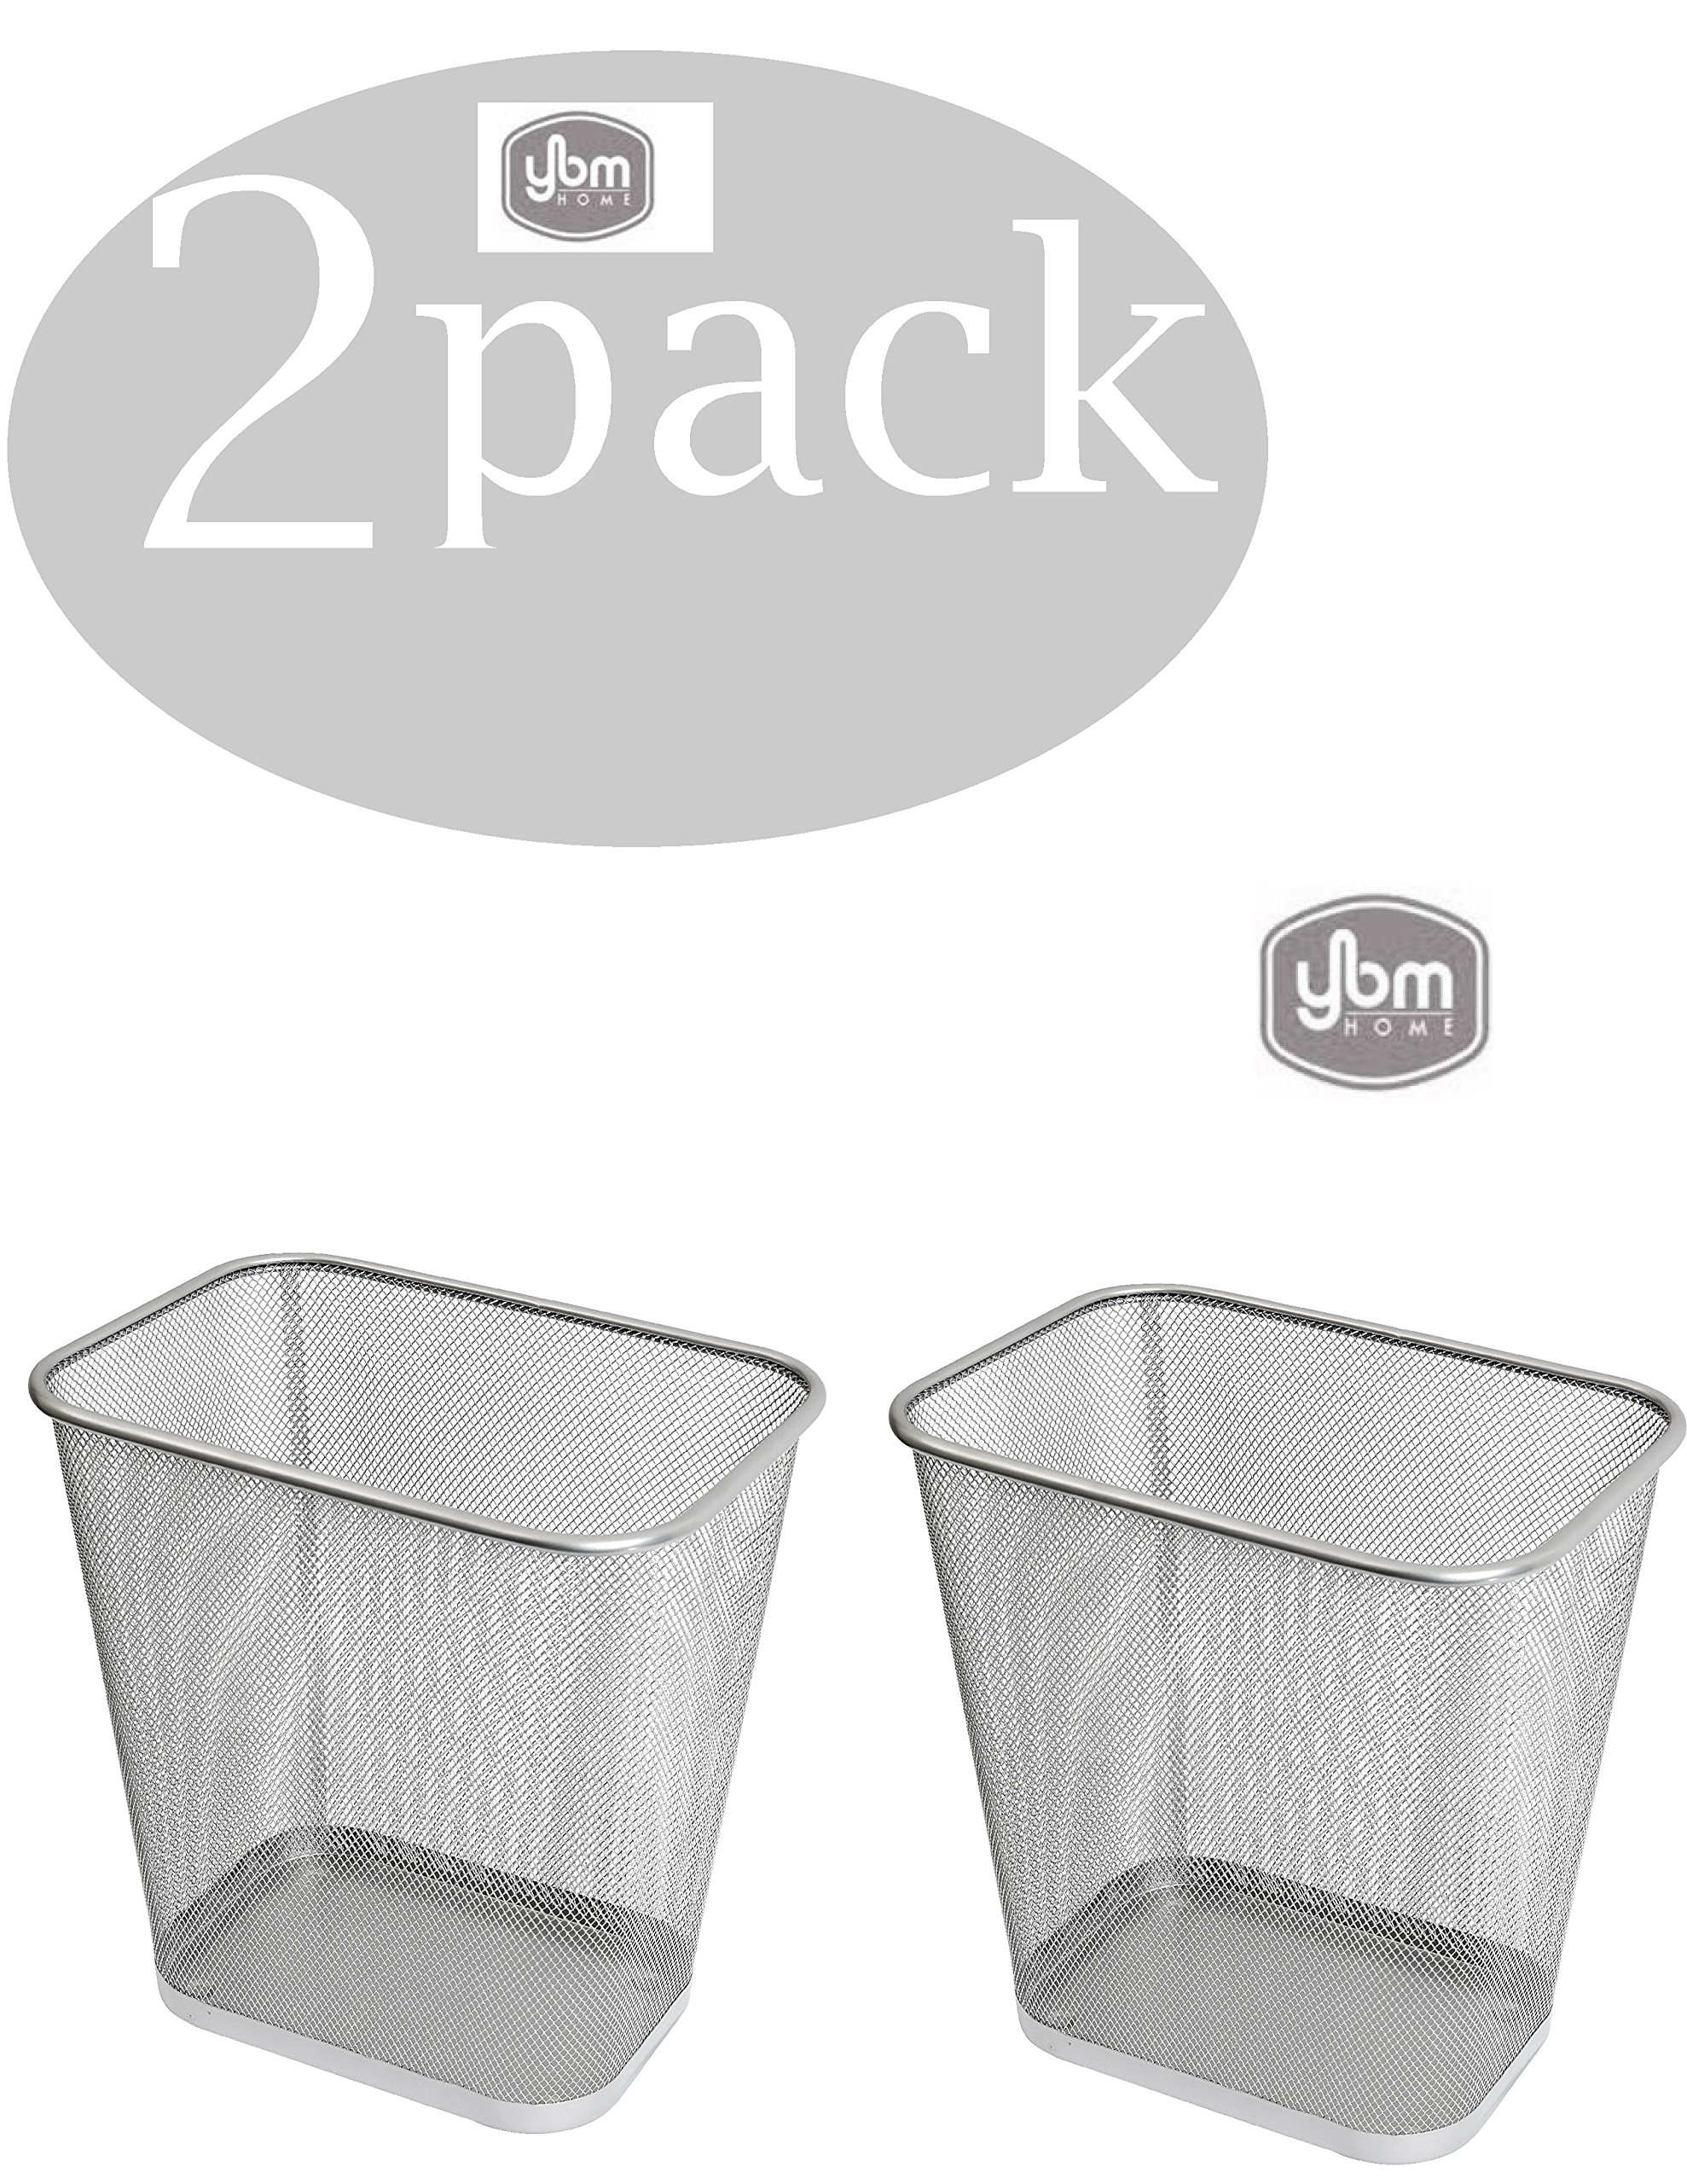 Ybmhome Steel Mesh Rectangular Open Top Waste Basket Bin Trash Can for Office Home 8x12x12 Inches 1042s-2(2, Silver)